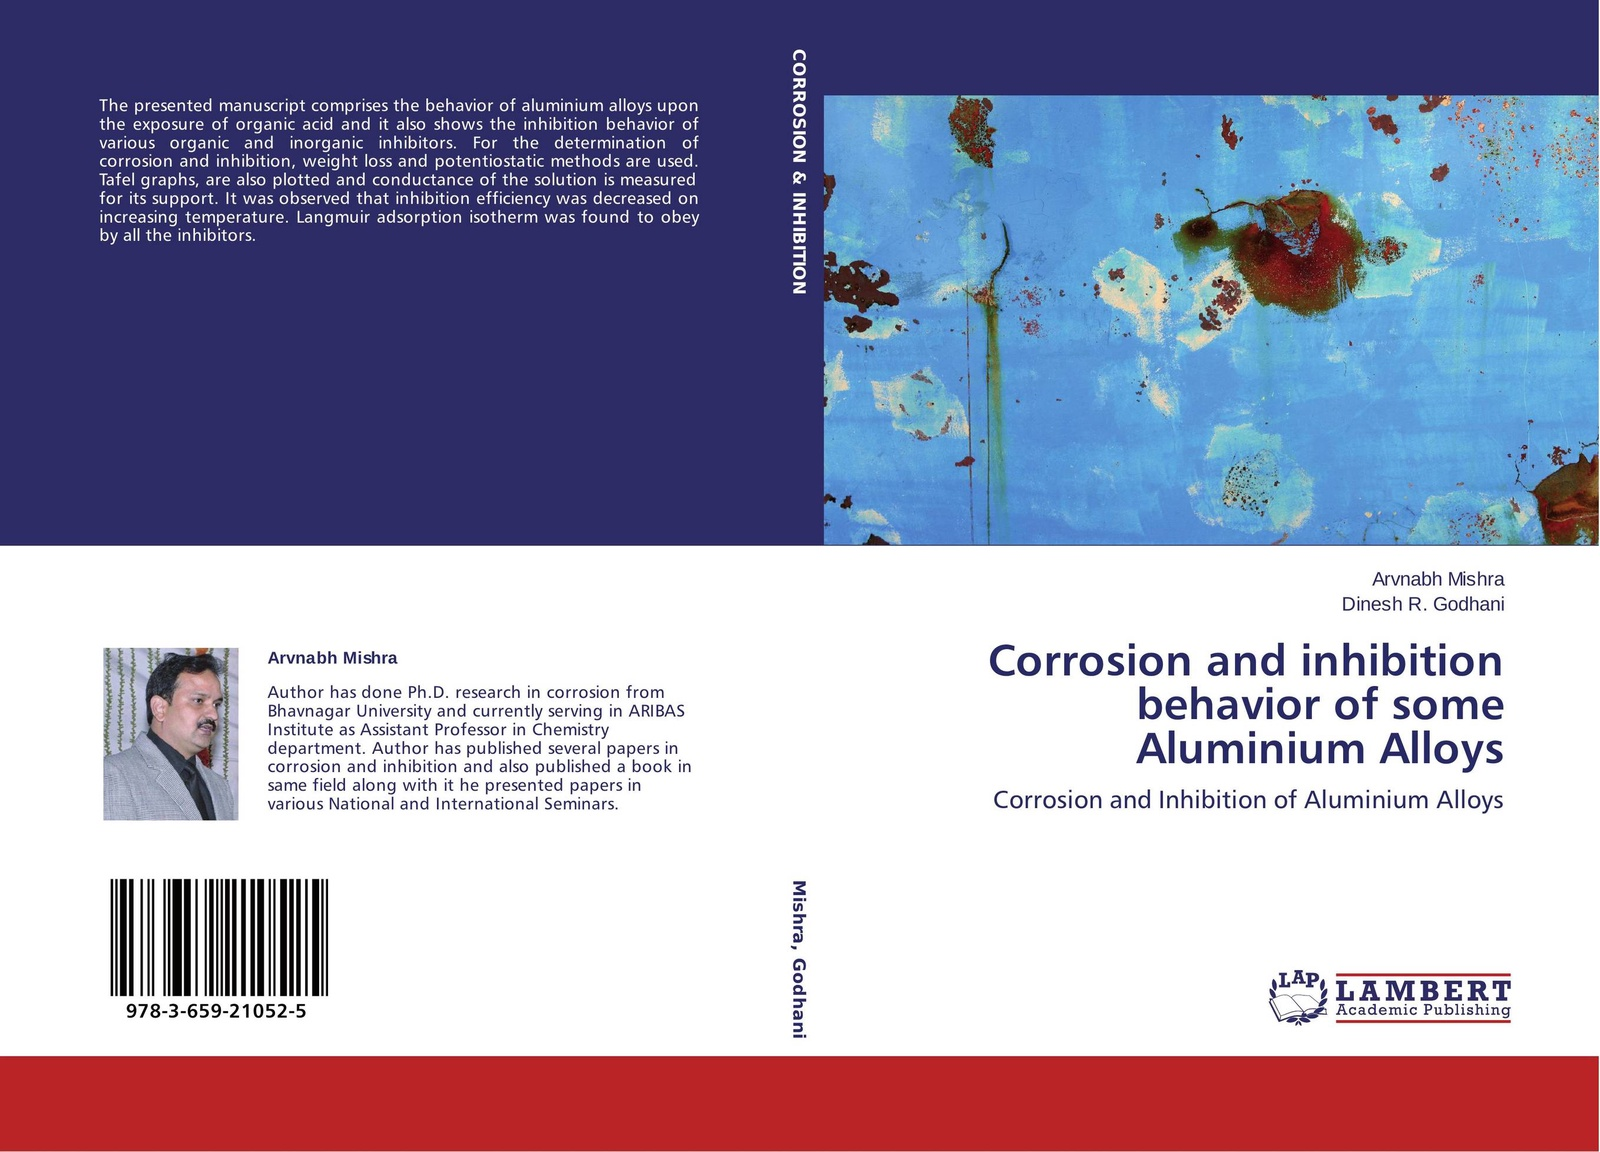 Arvnabh Mishra and Dinesh R. Godhani Corrosion and inhibition behavior of some Aluminium Alloys neha khandelwal protease inhibitors potential and constraints